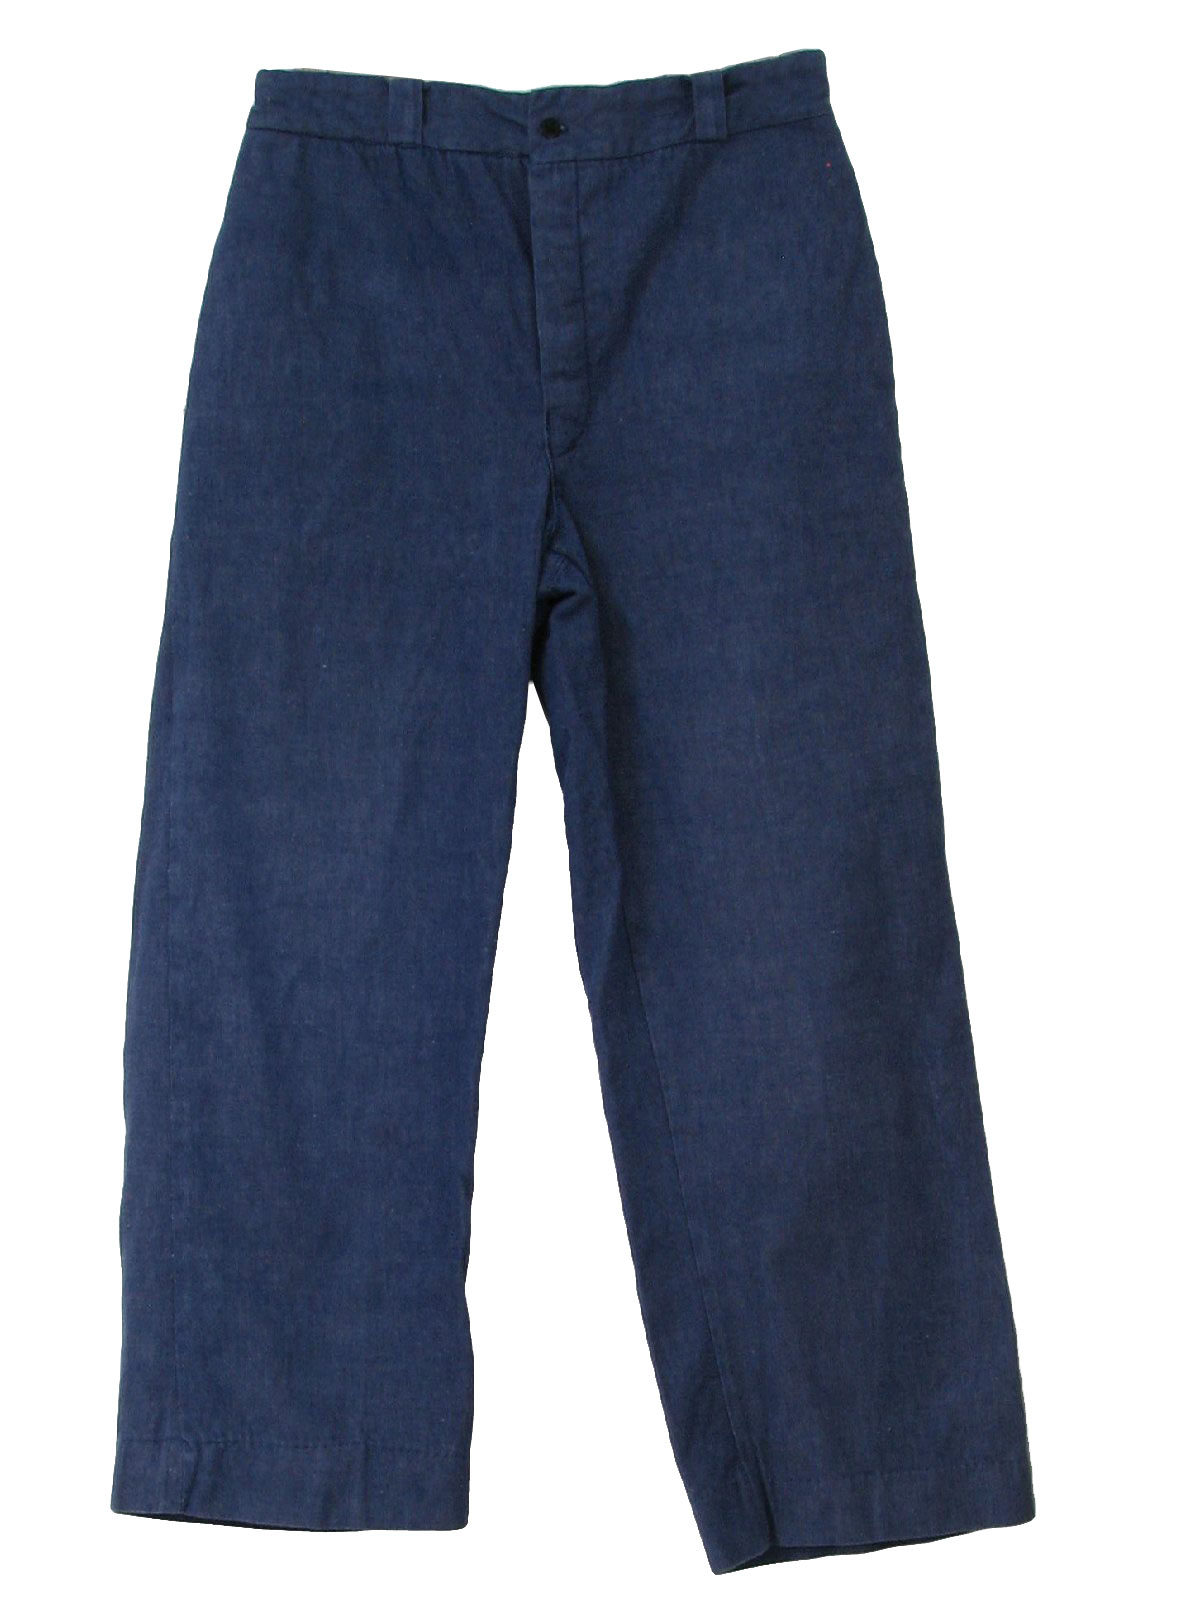 70s Vintage Pants: 70s - no label- Mens medium blue cotton denim ...